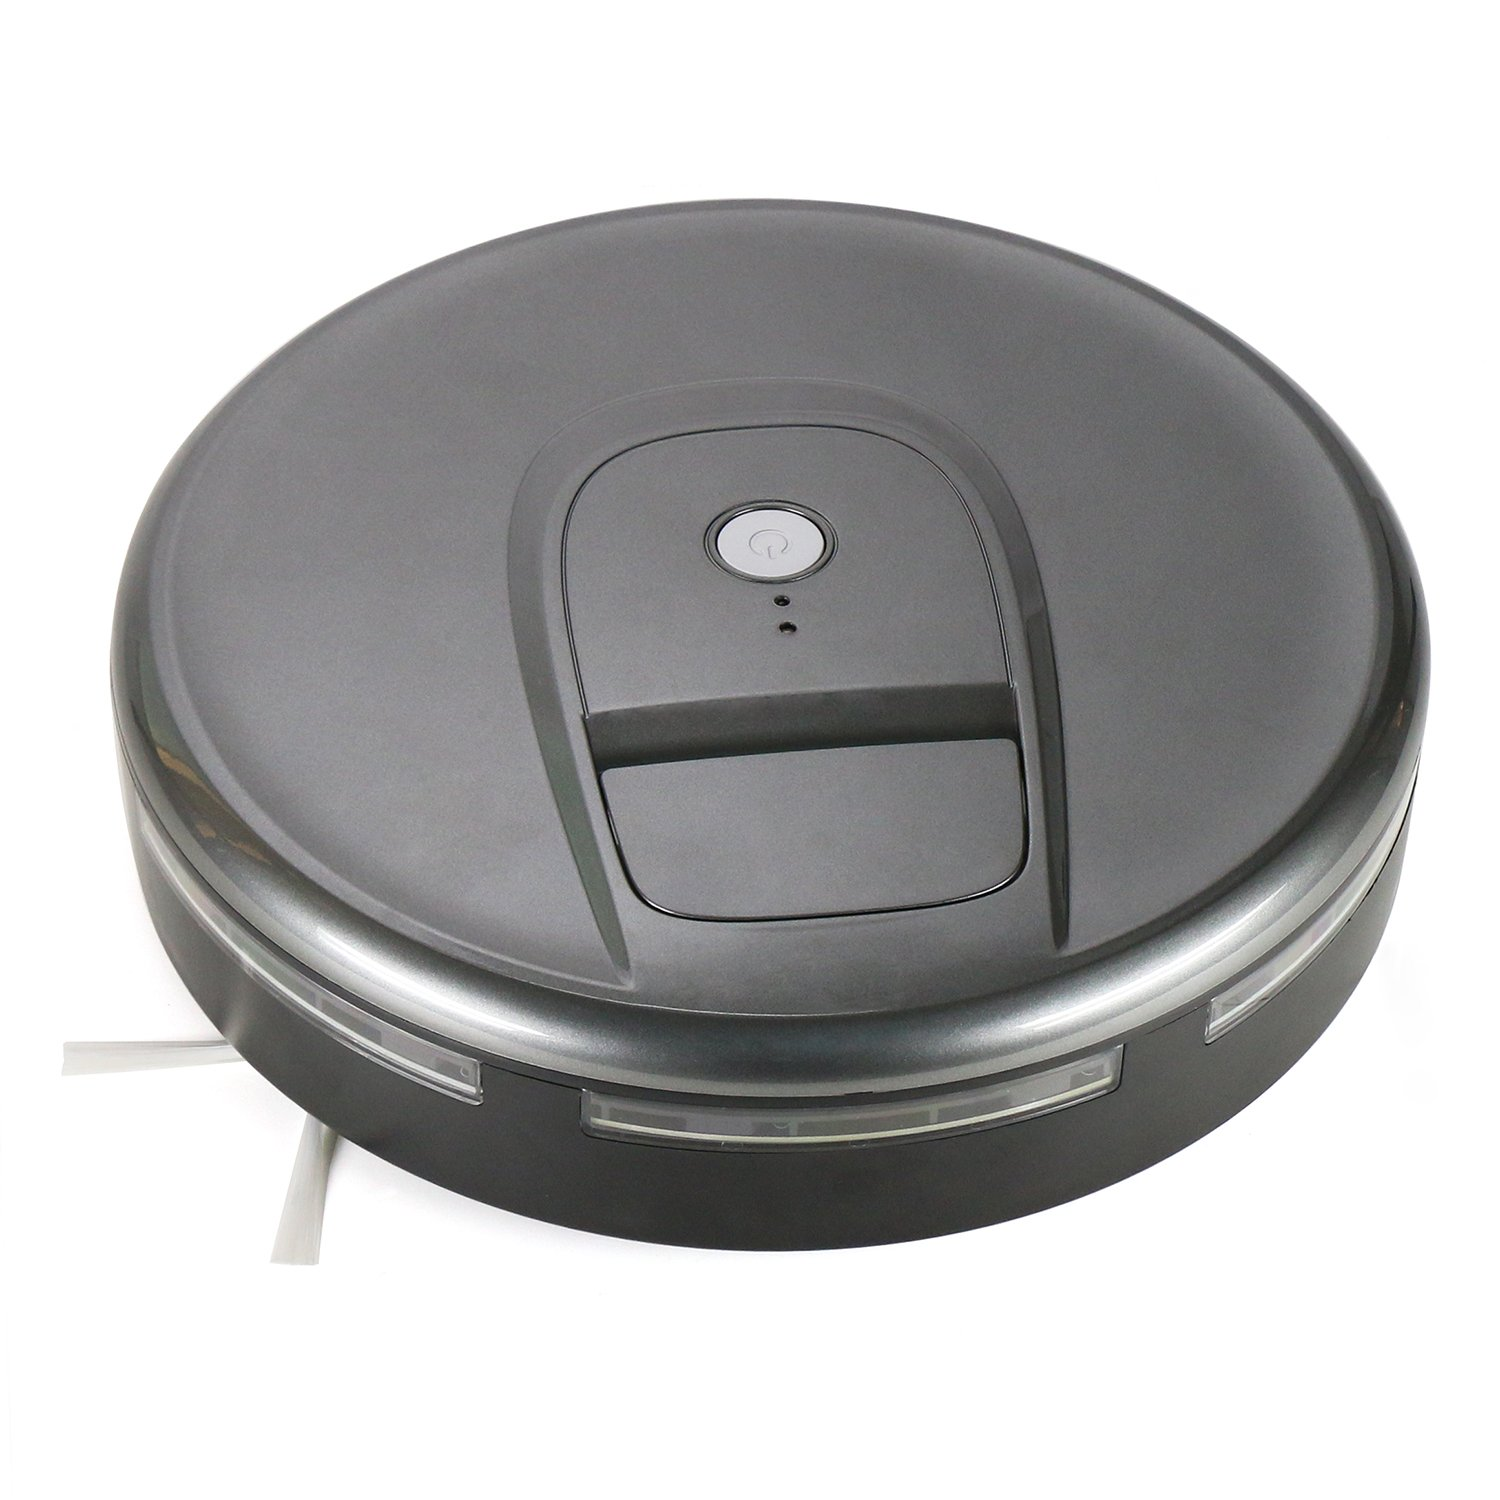 FINE DRAGON Basic Version Robot Vacuum